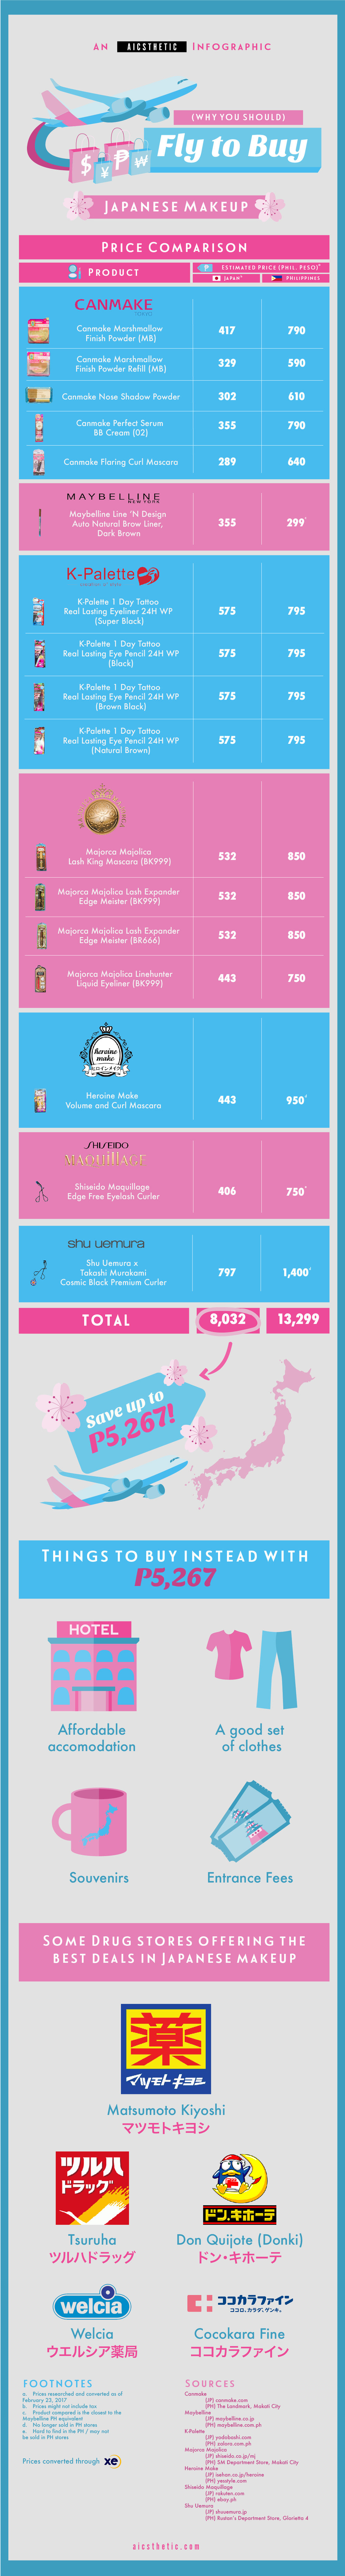 20170312_BeautyHaul2_Info_Blog-Infographic.jpg